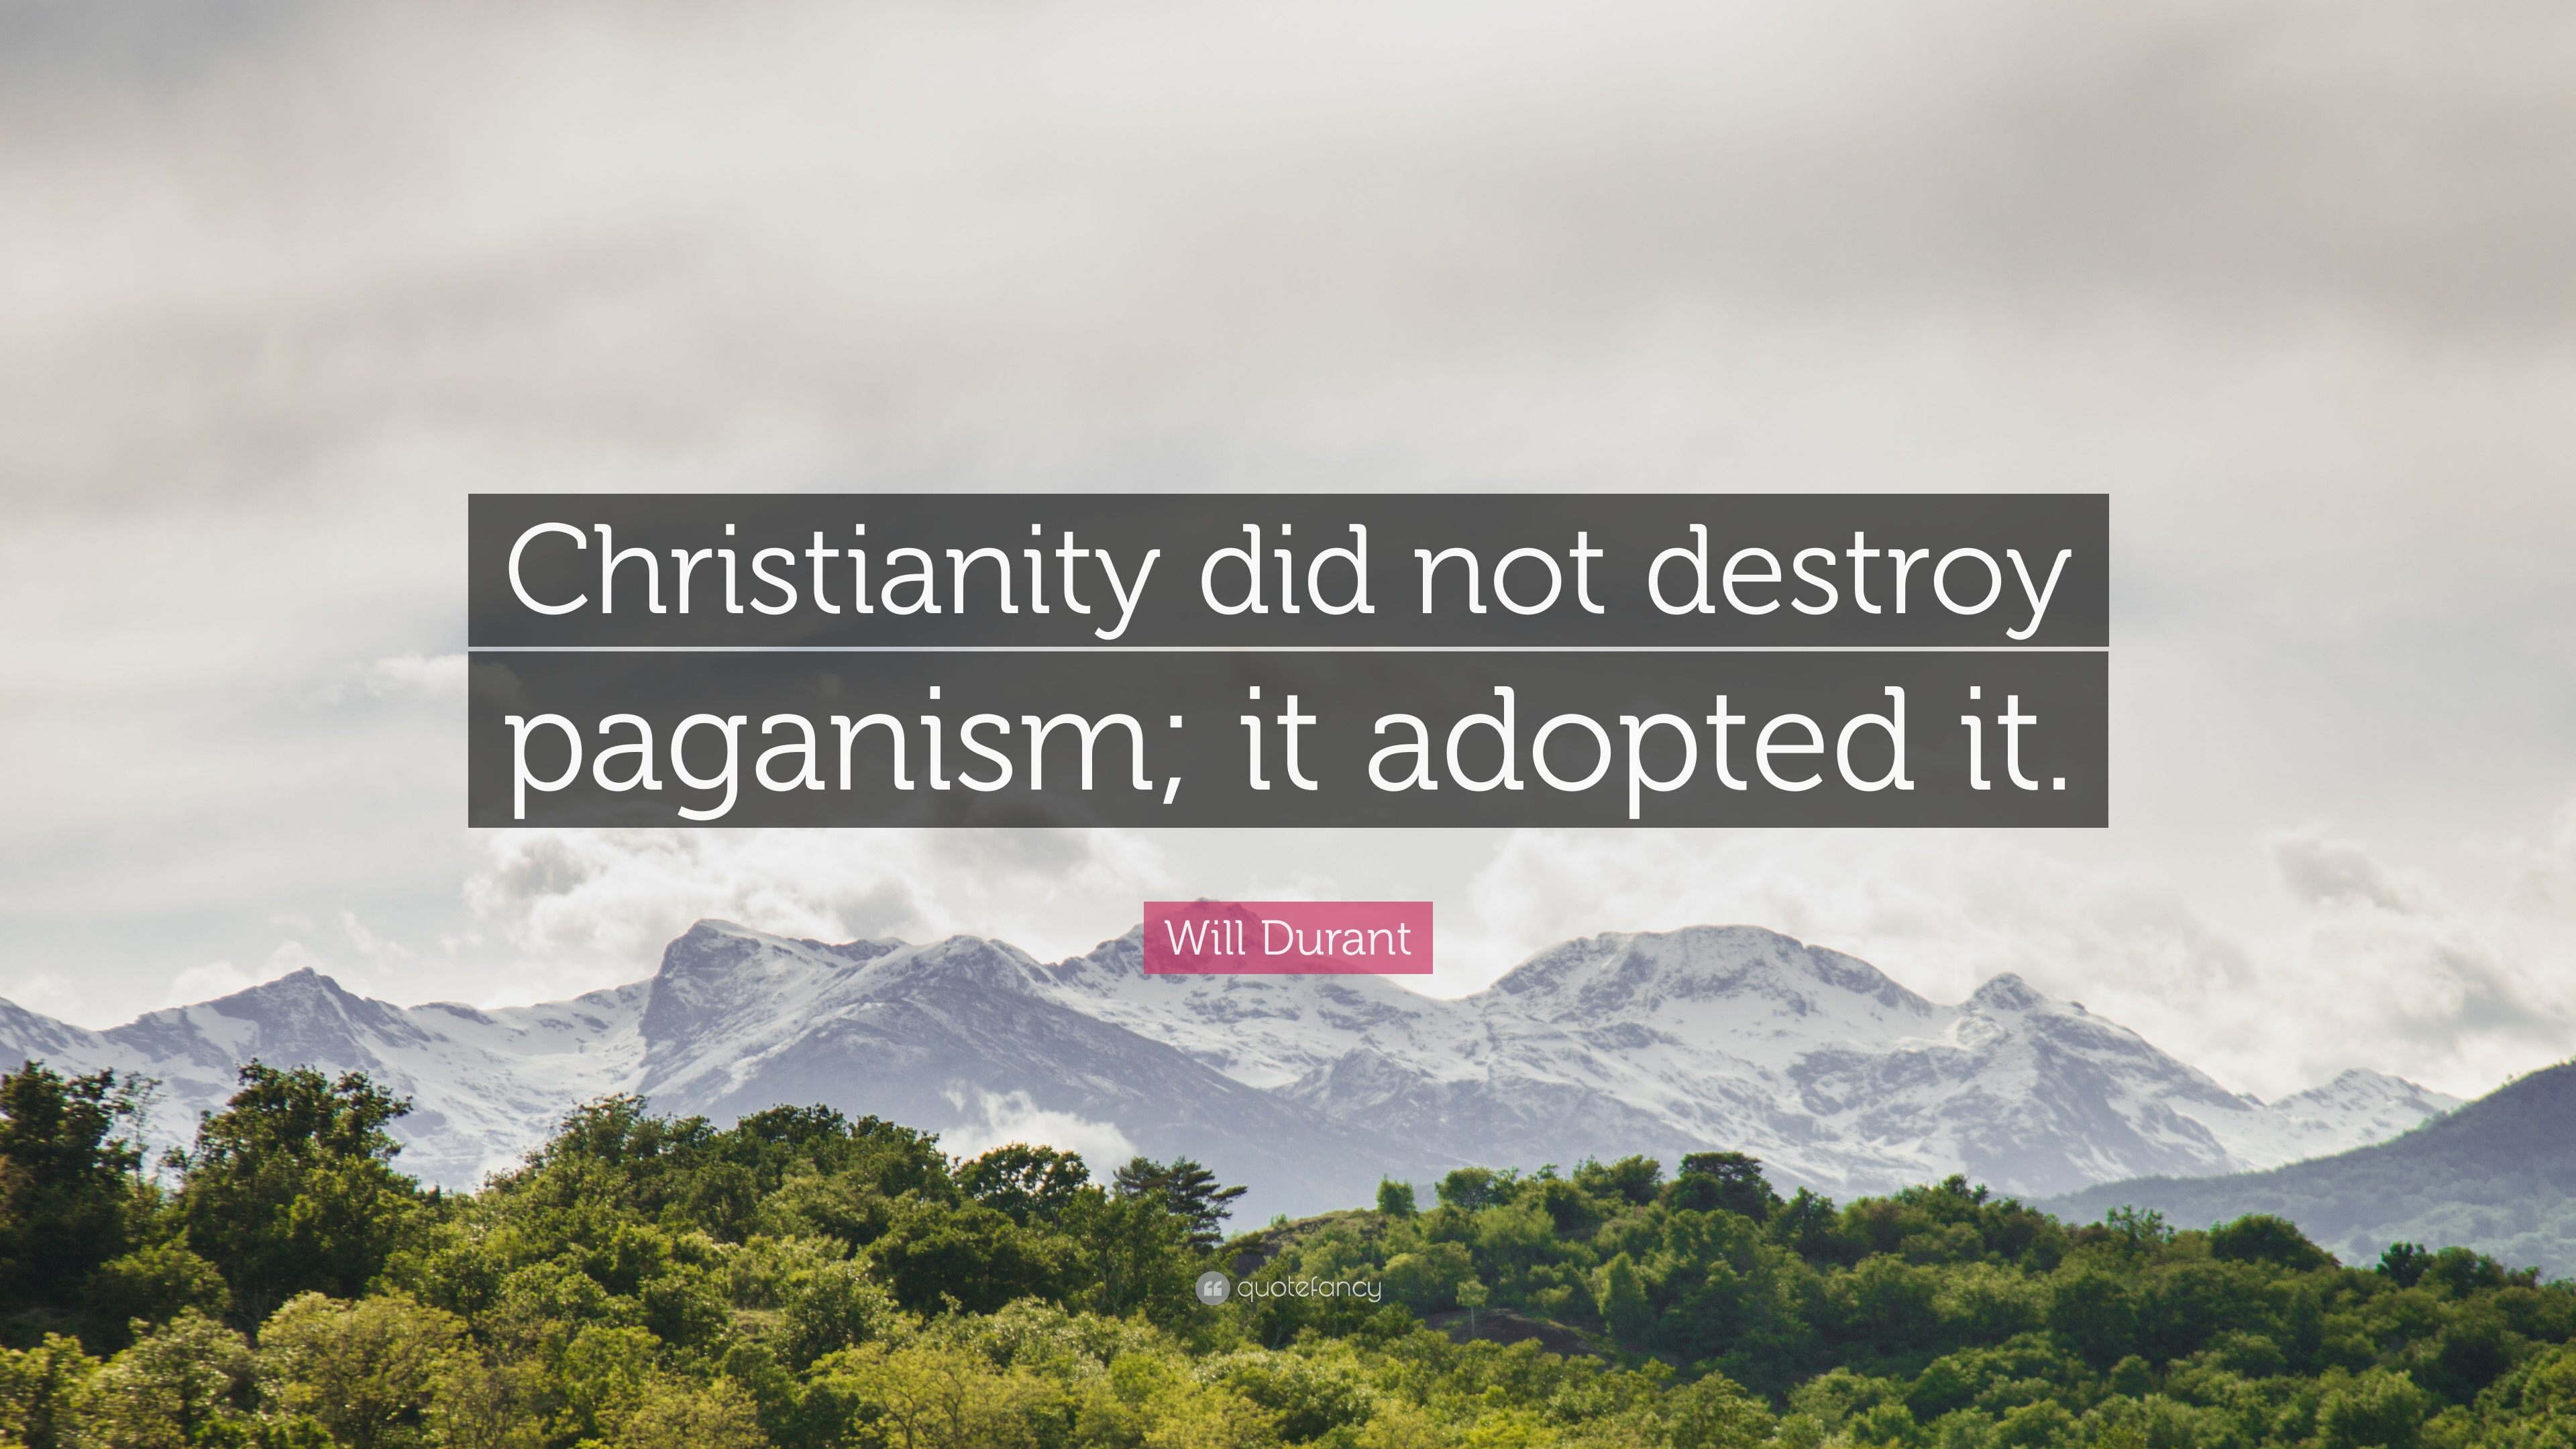 When Christianity was adopted 97